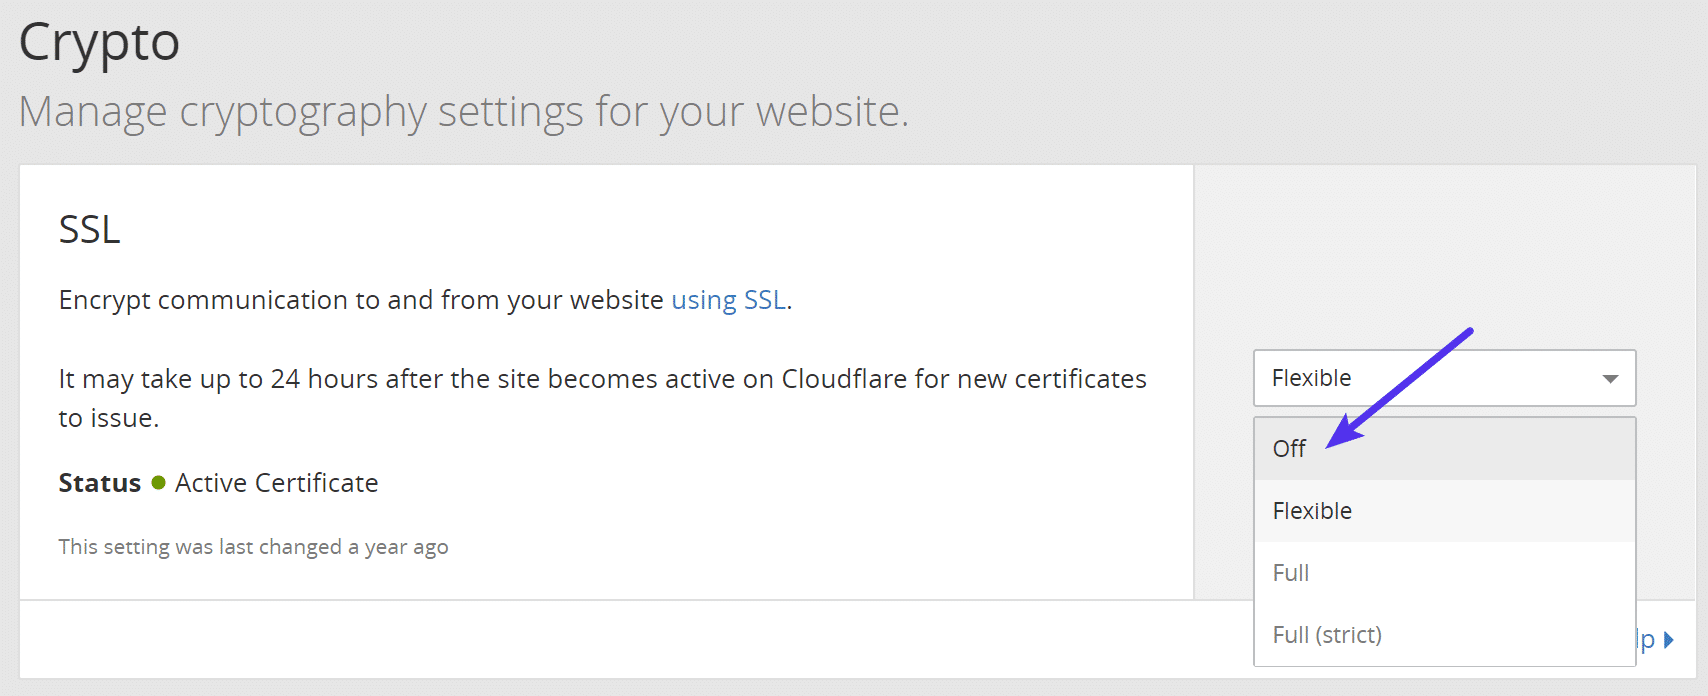 Turn off SSL in Cloudflare